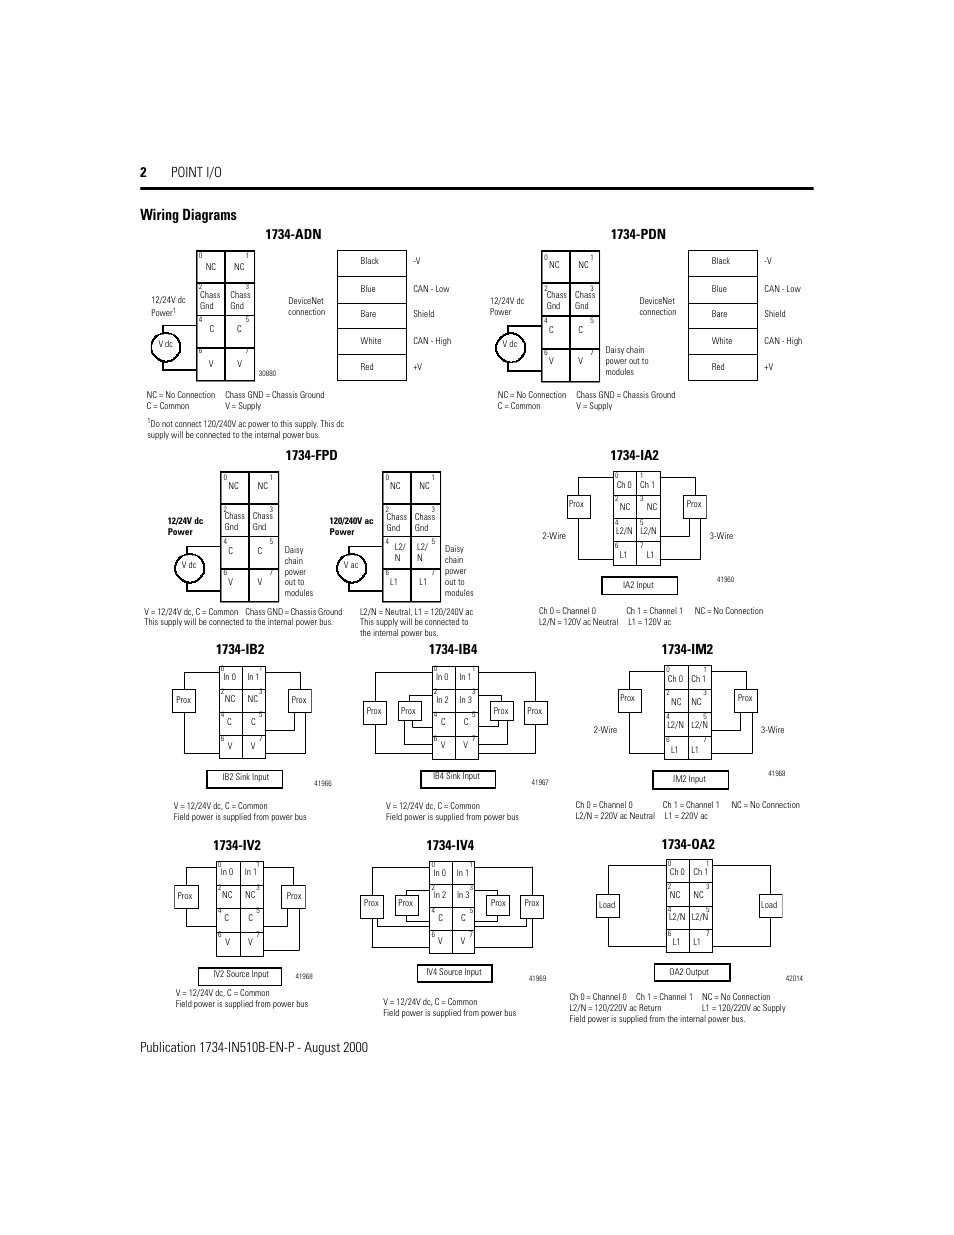 boat dc wiring diagram glow plug relay diagrams, 1734-pdn, 1734-fpd | rockwell automation 1734 point i/o installation ...